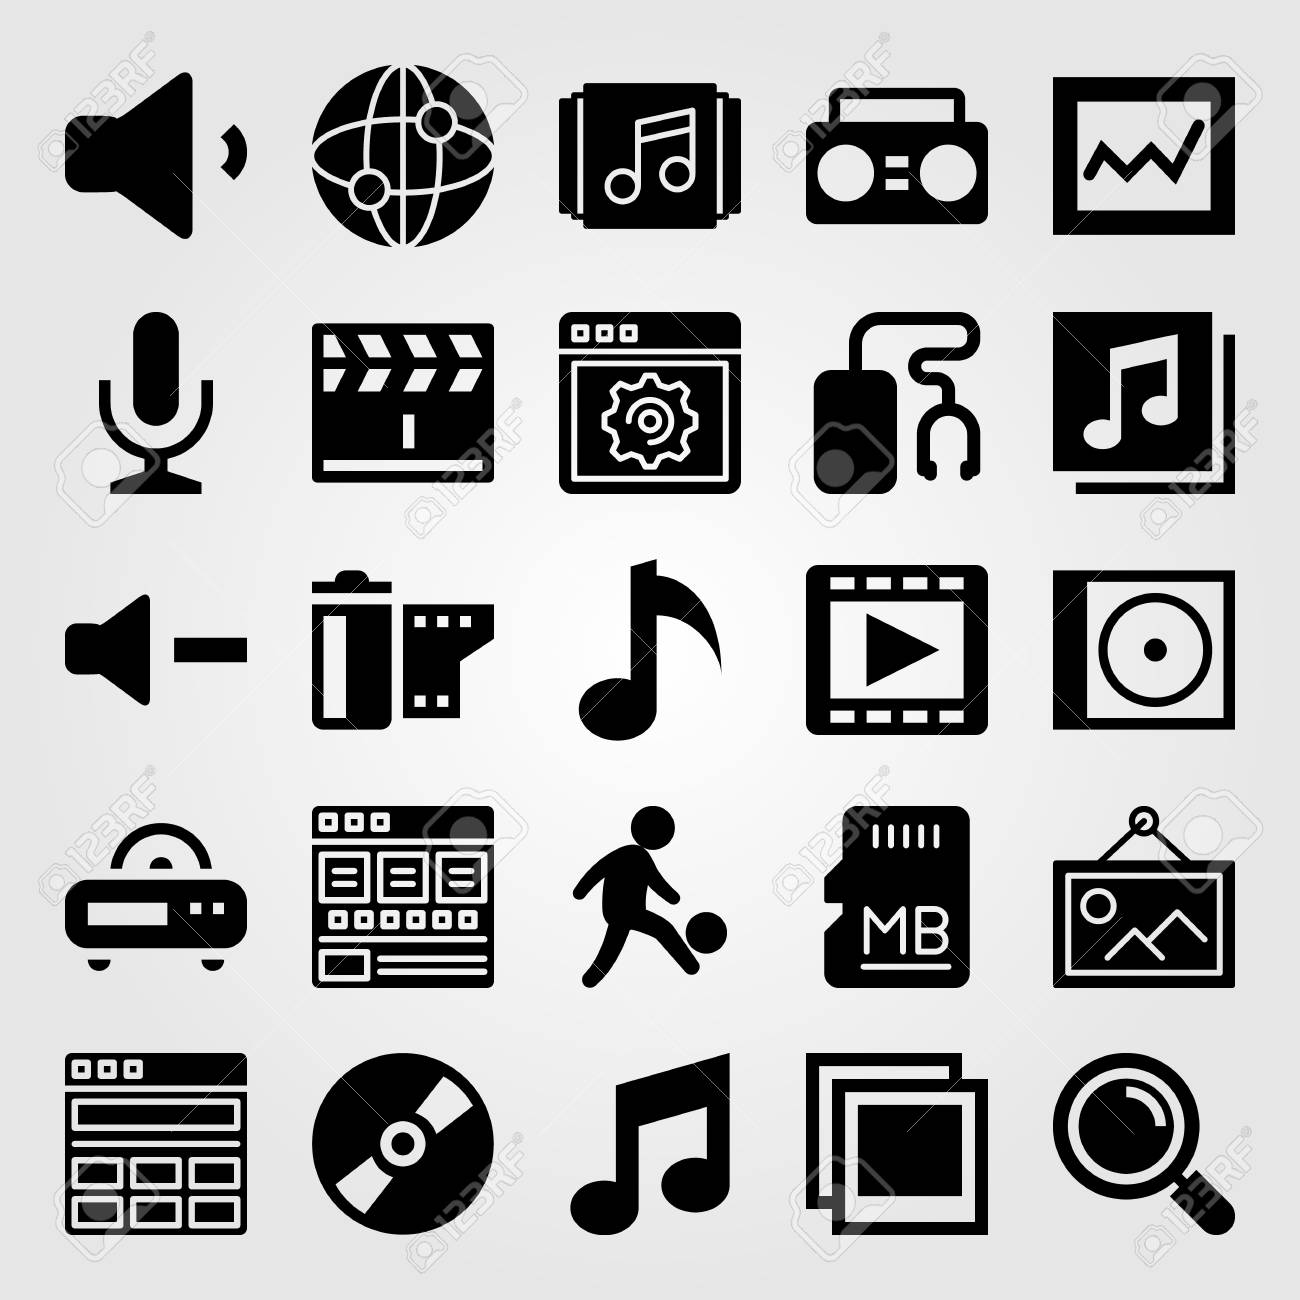 Multimedia icon set vector  playlist, musical note, music player